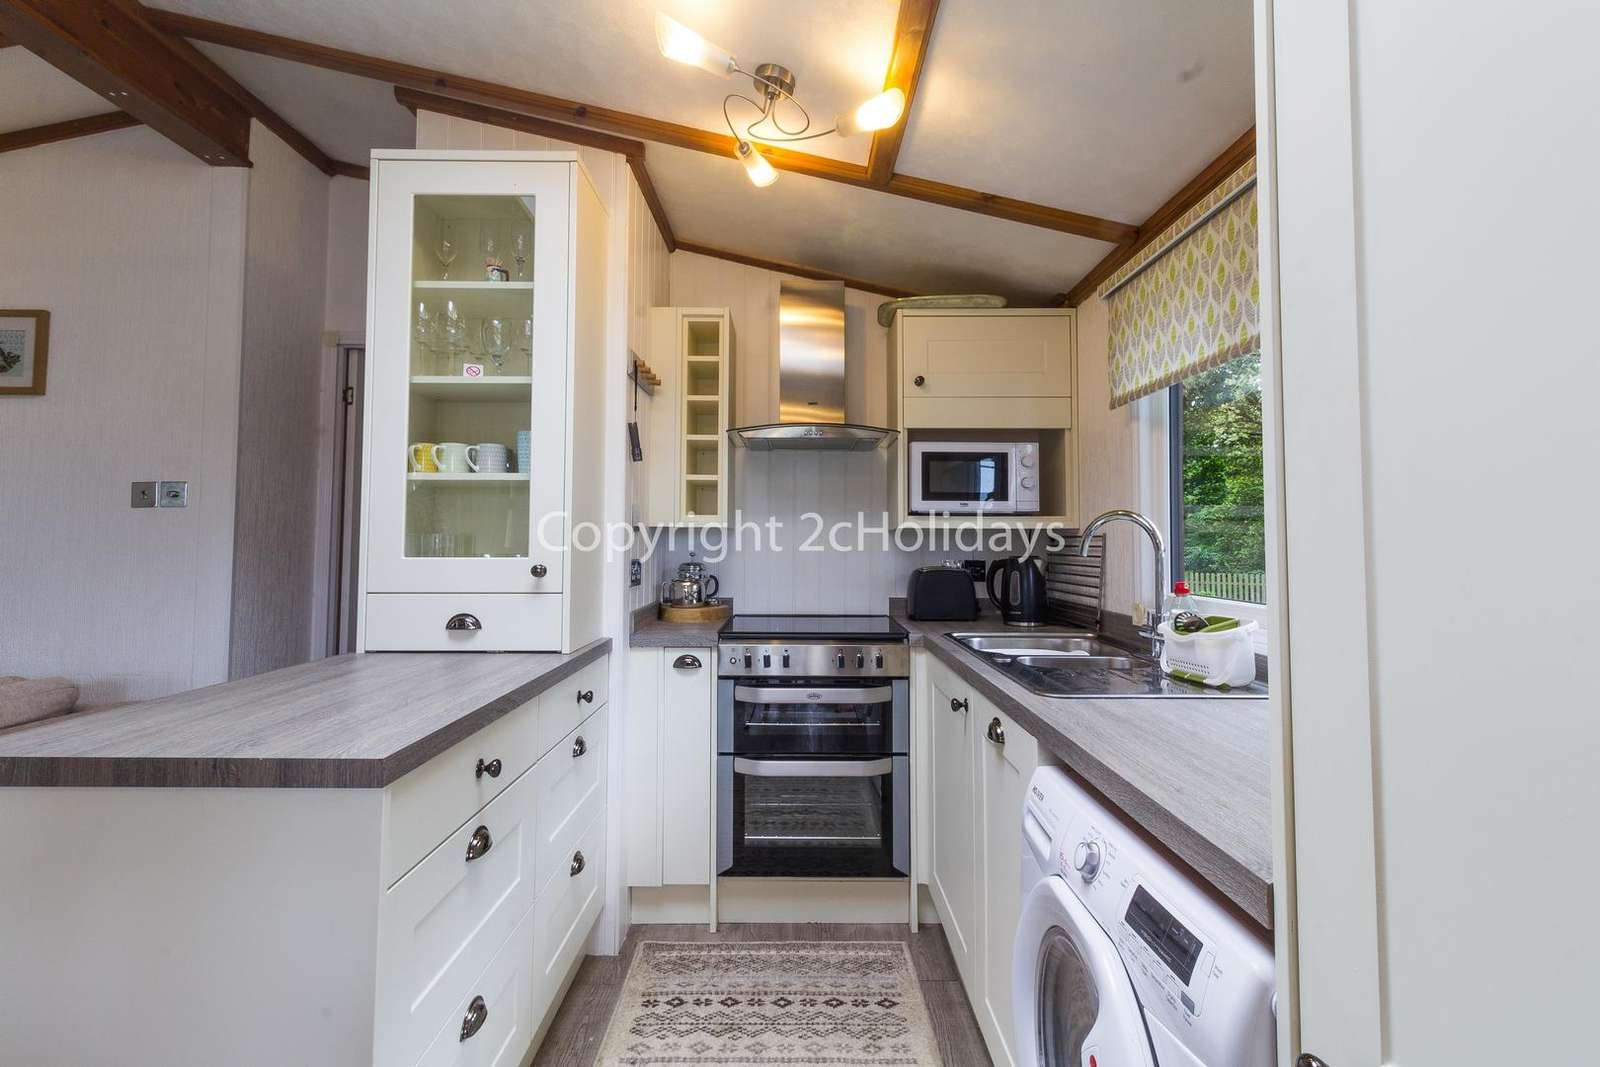 A fully equipped kitchen, perfect for self-catering breaks!